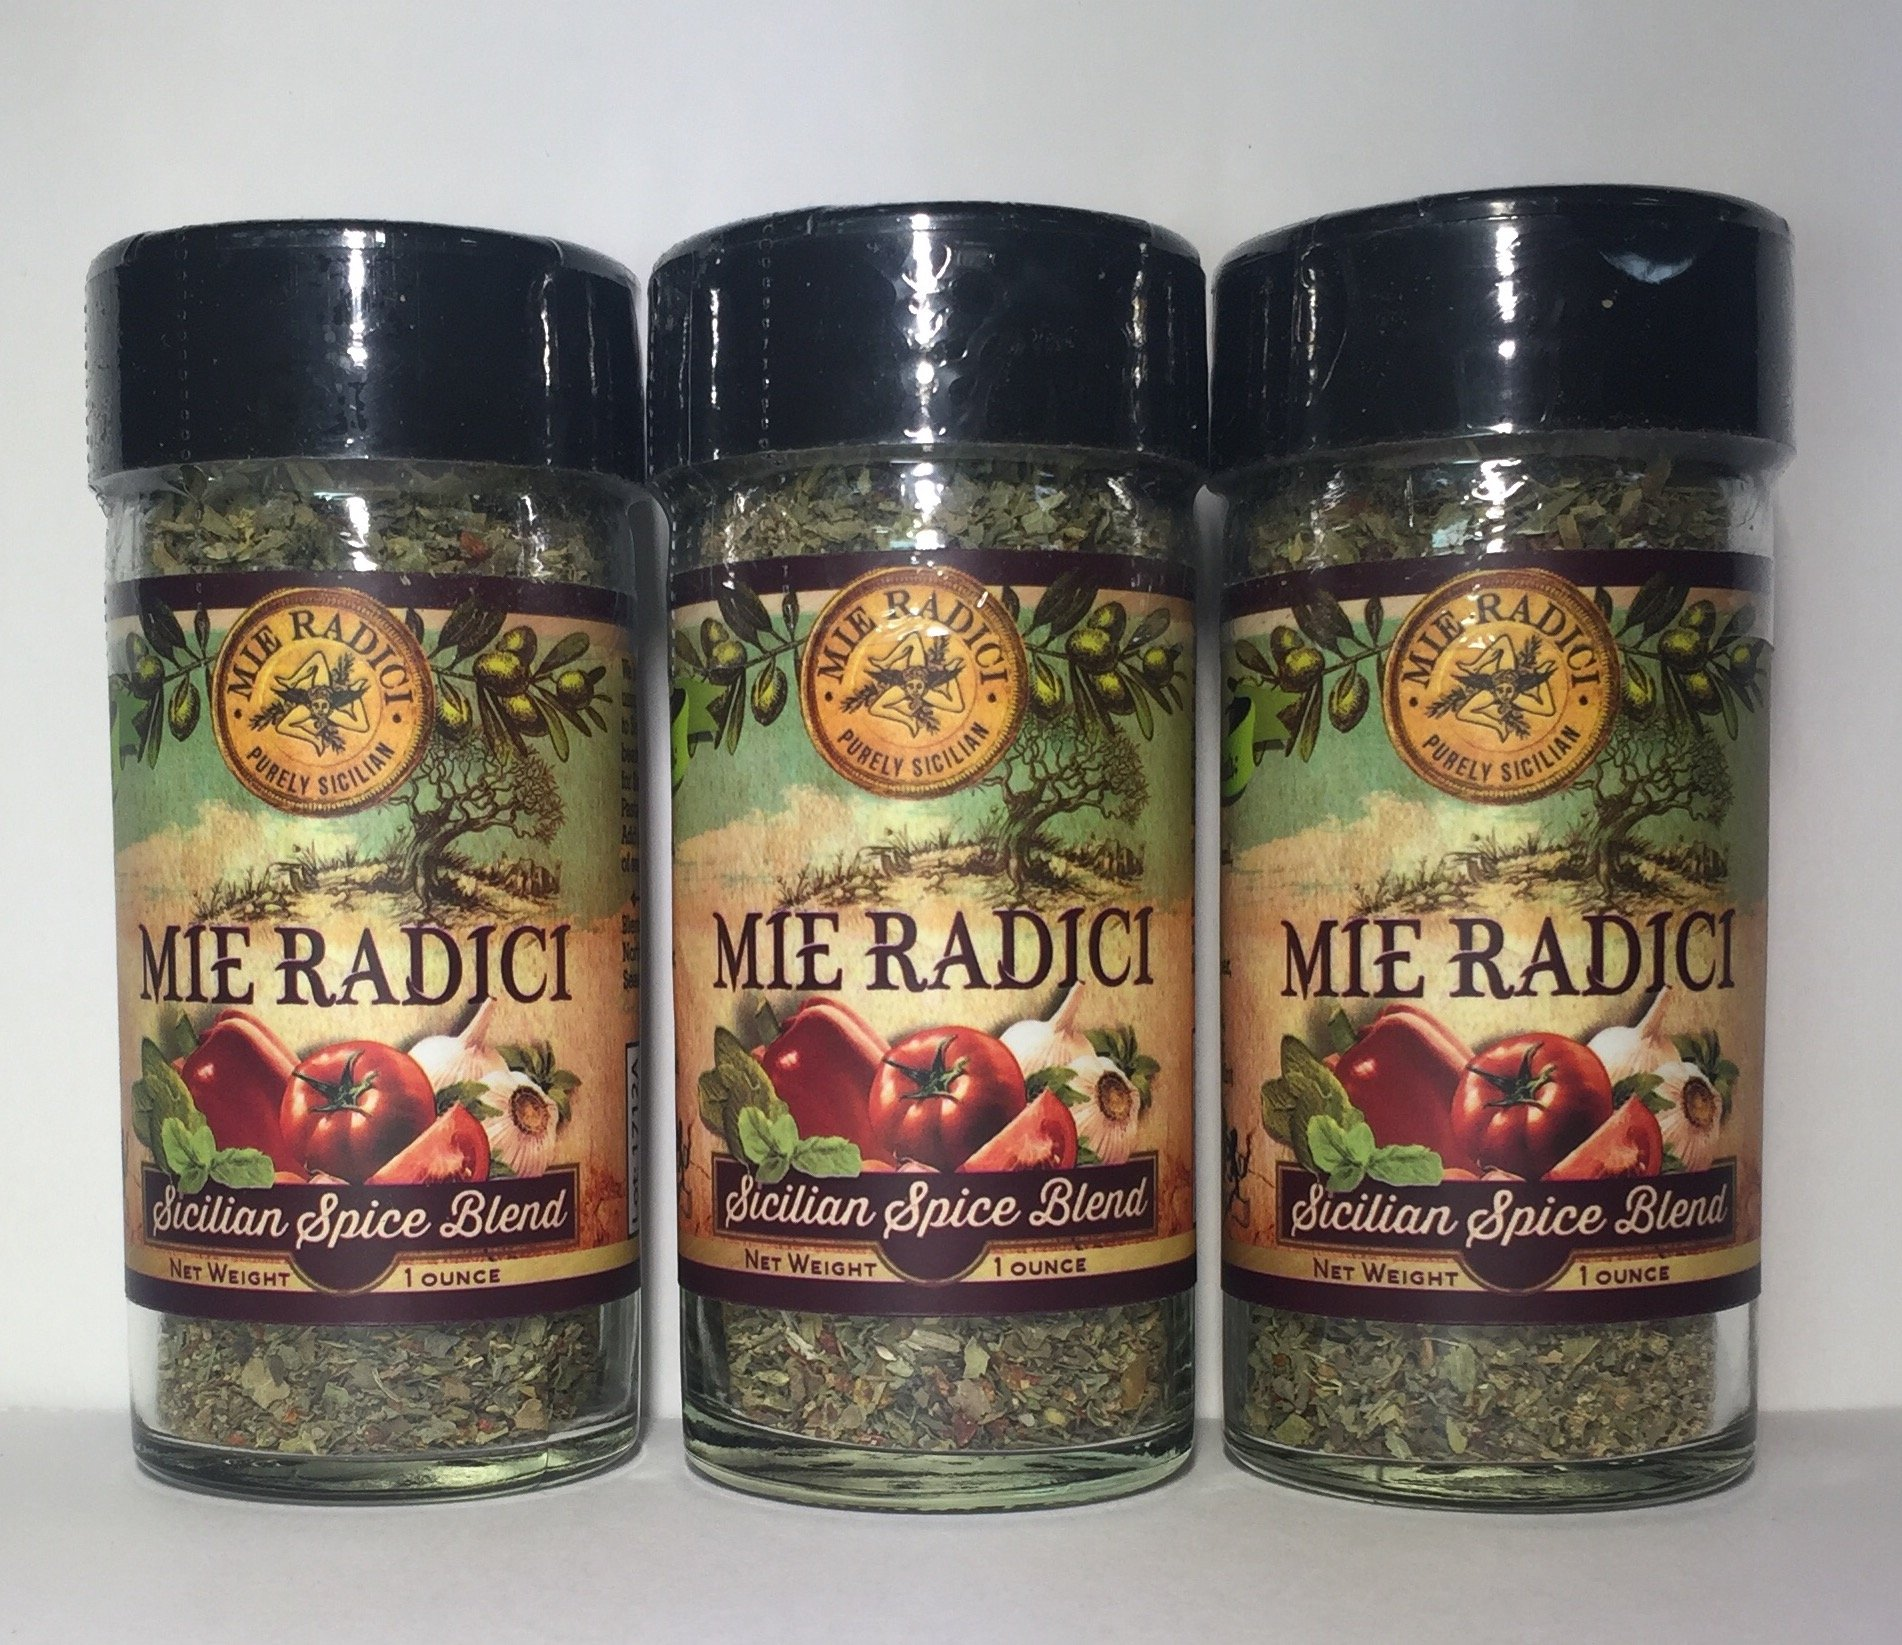 Mie Radici Sicilian Spice Blend. 3- Pack 1.2 oz Jar with Shaker Top